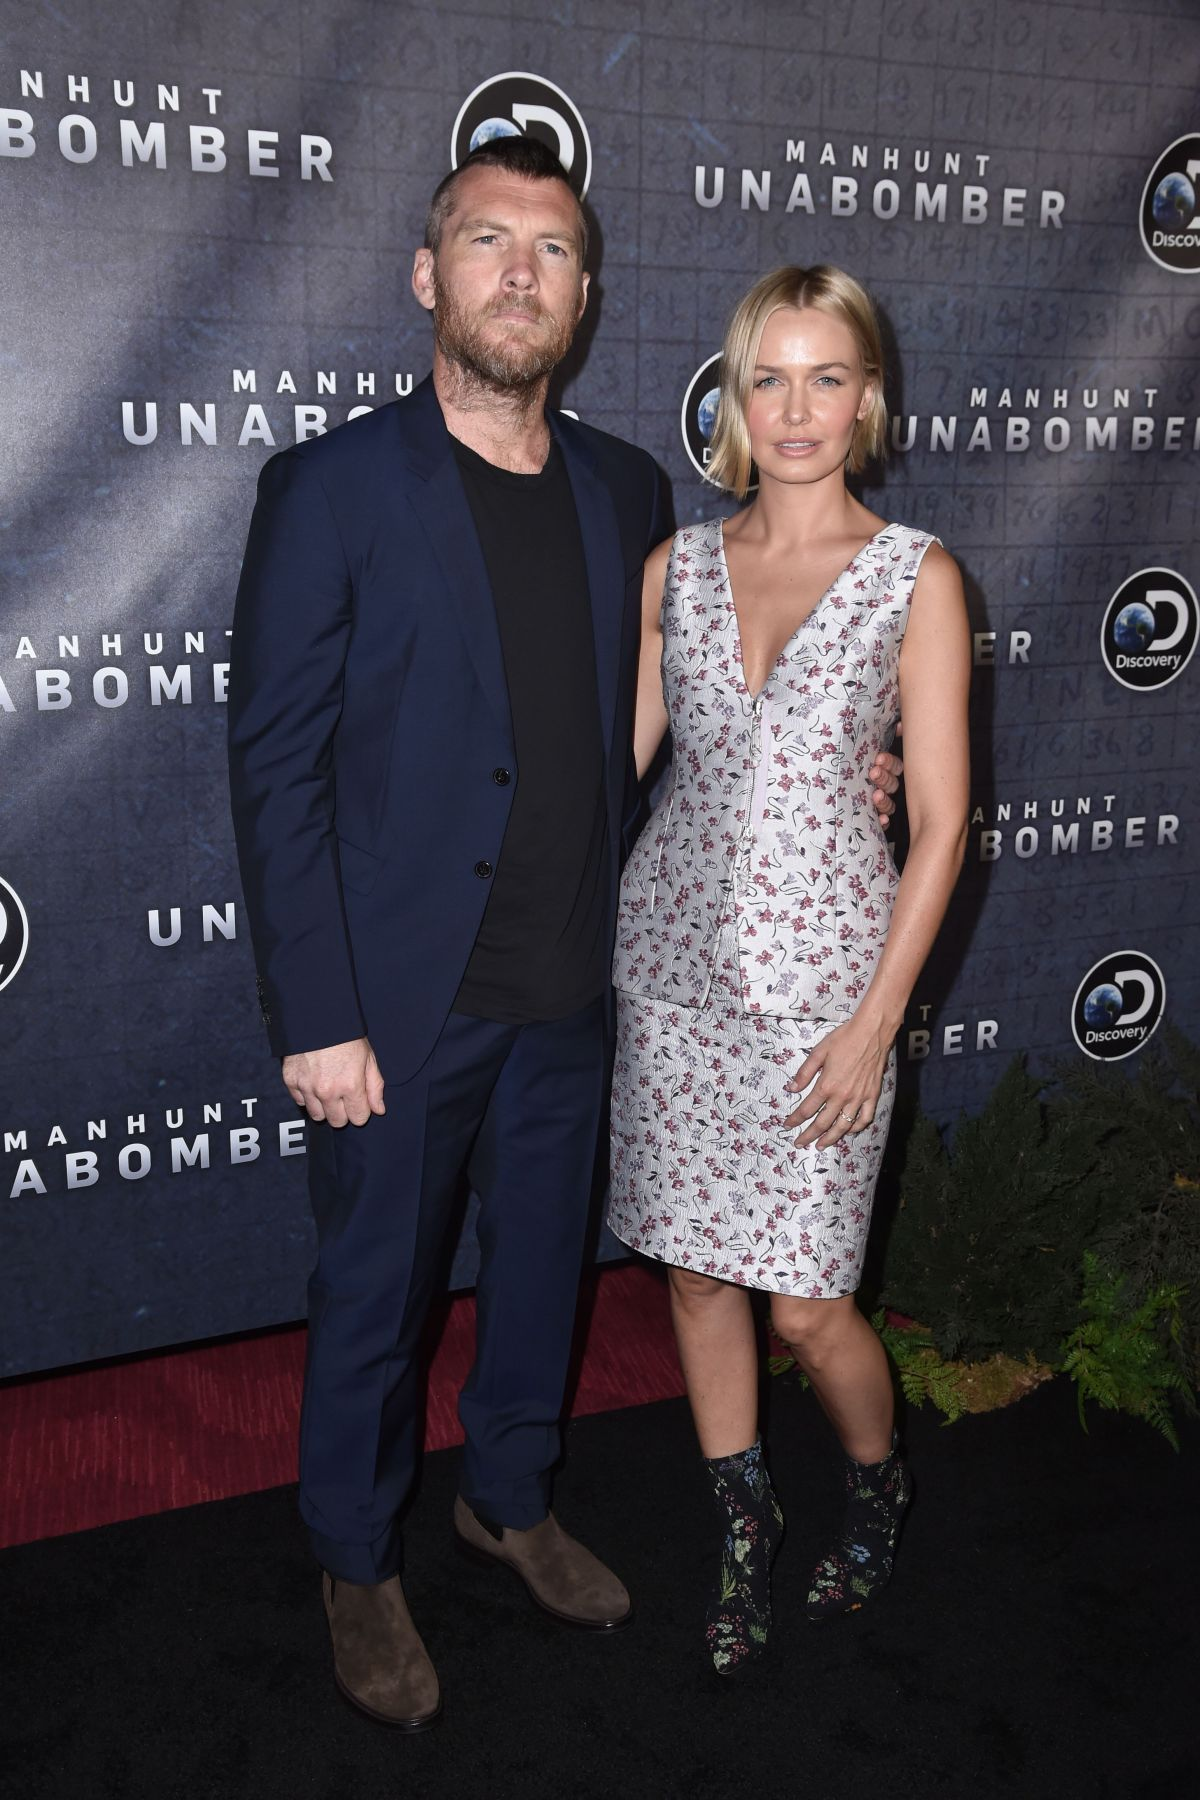 LARA BINGLE at Manhunt: Unabomber TV Show Premiere in New York 07/19/2017